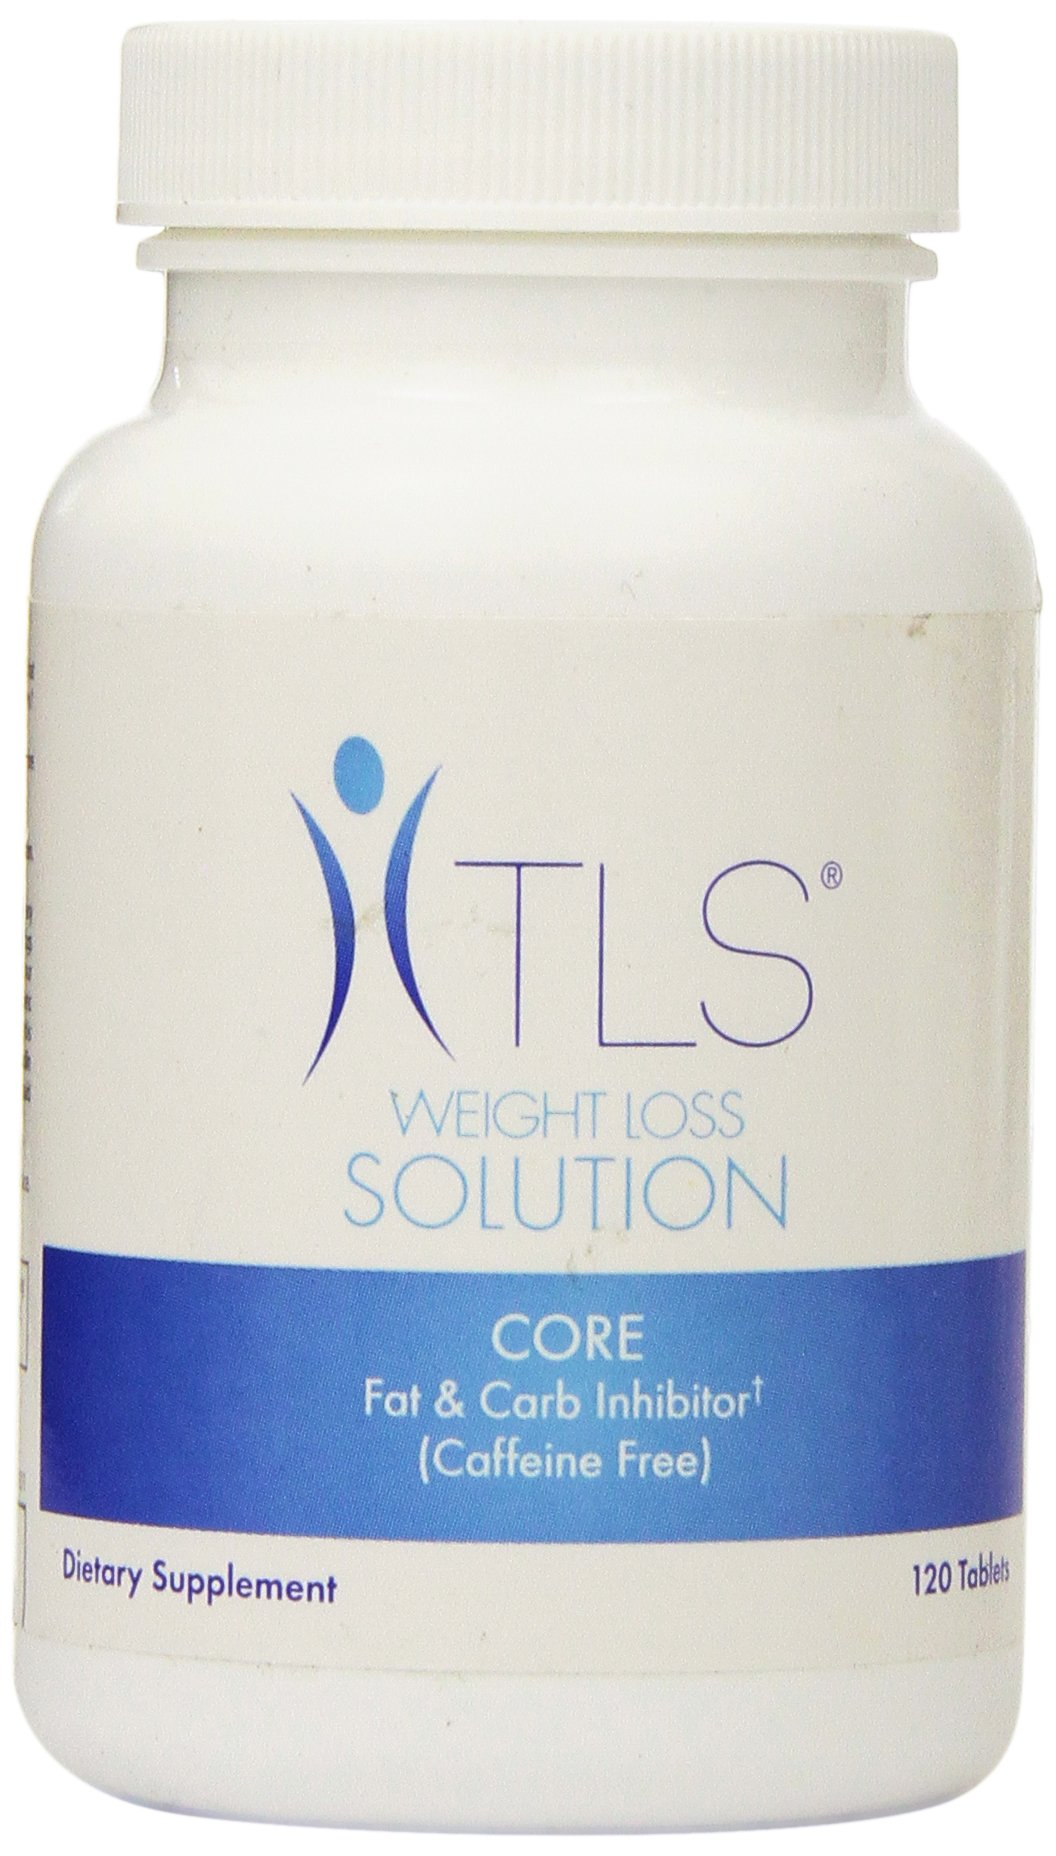 TLS CORE Fat & Carb Inhibitor 120 tablets